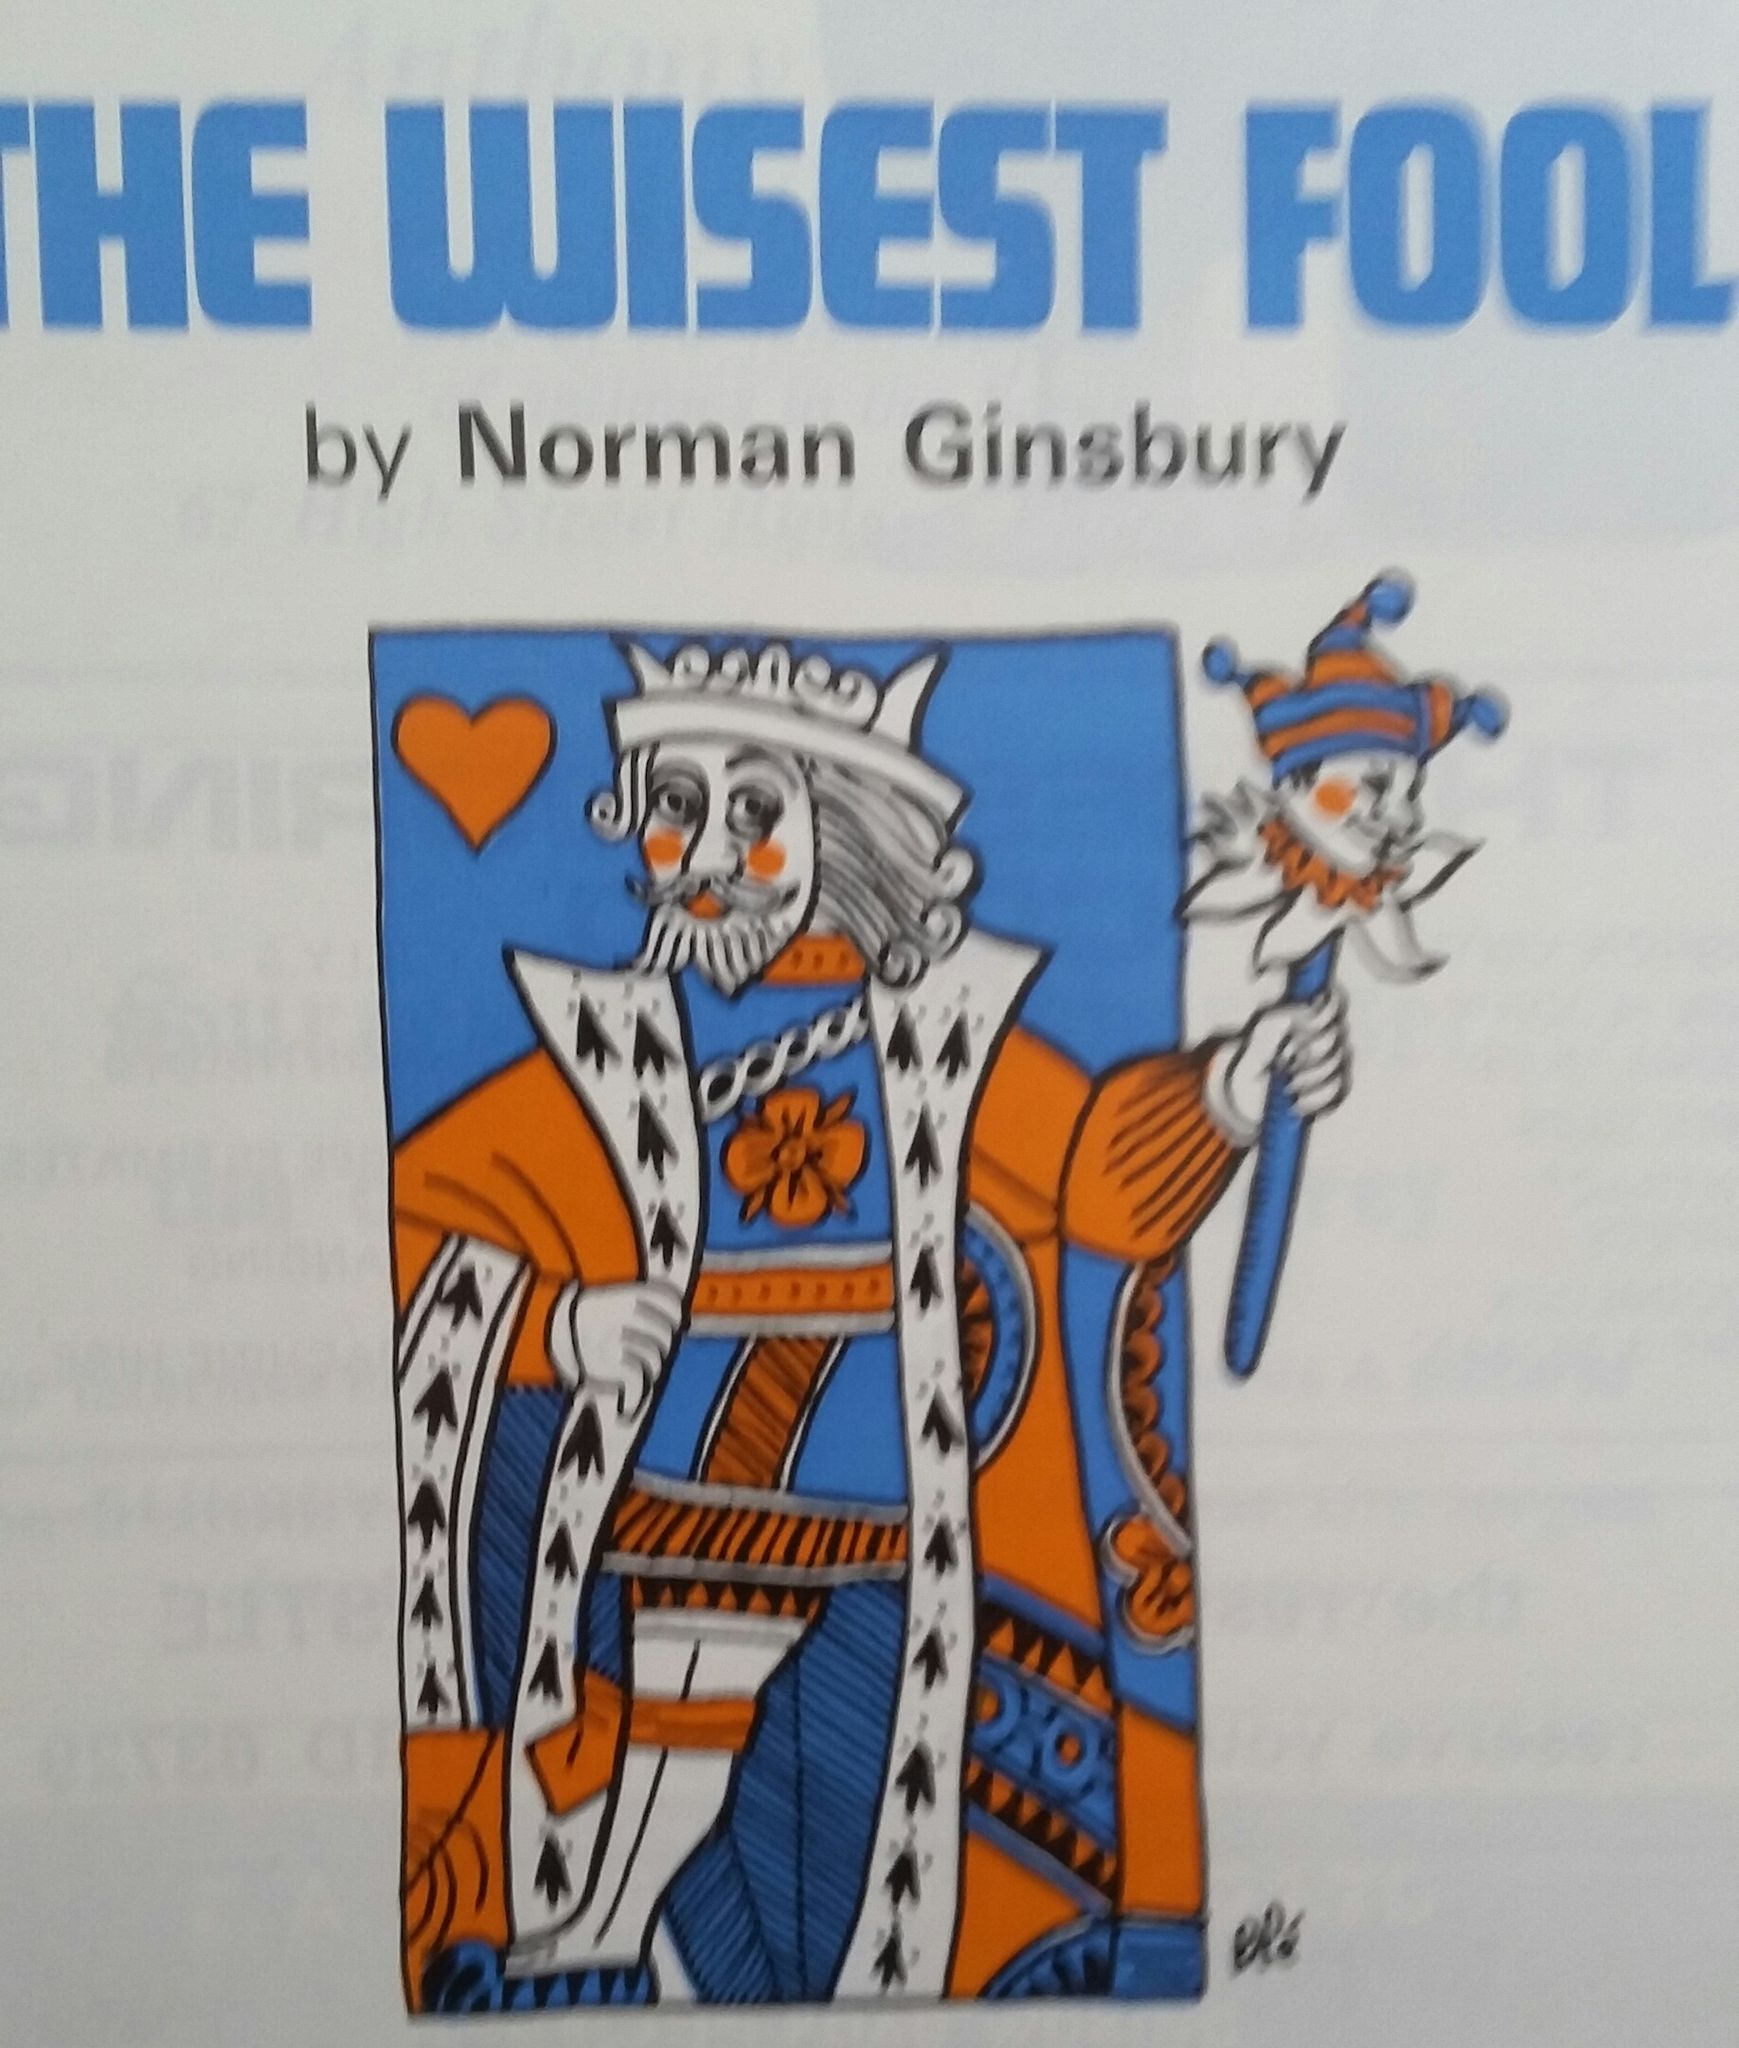 The Wisest Fool